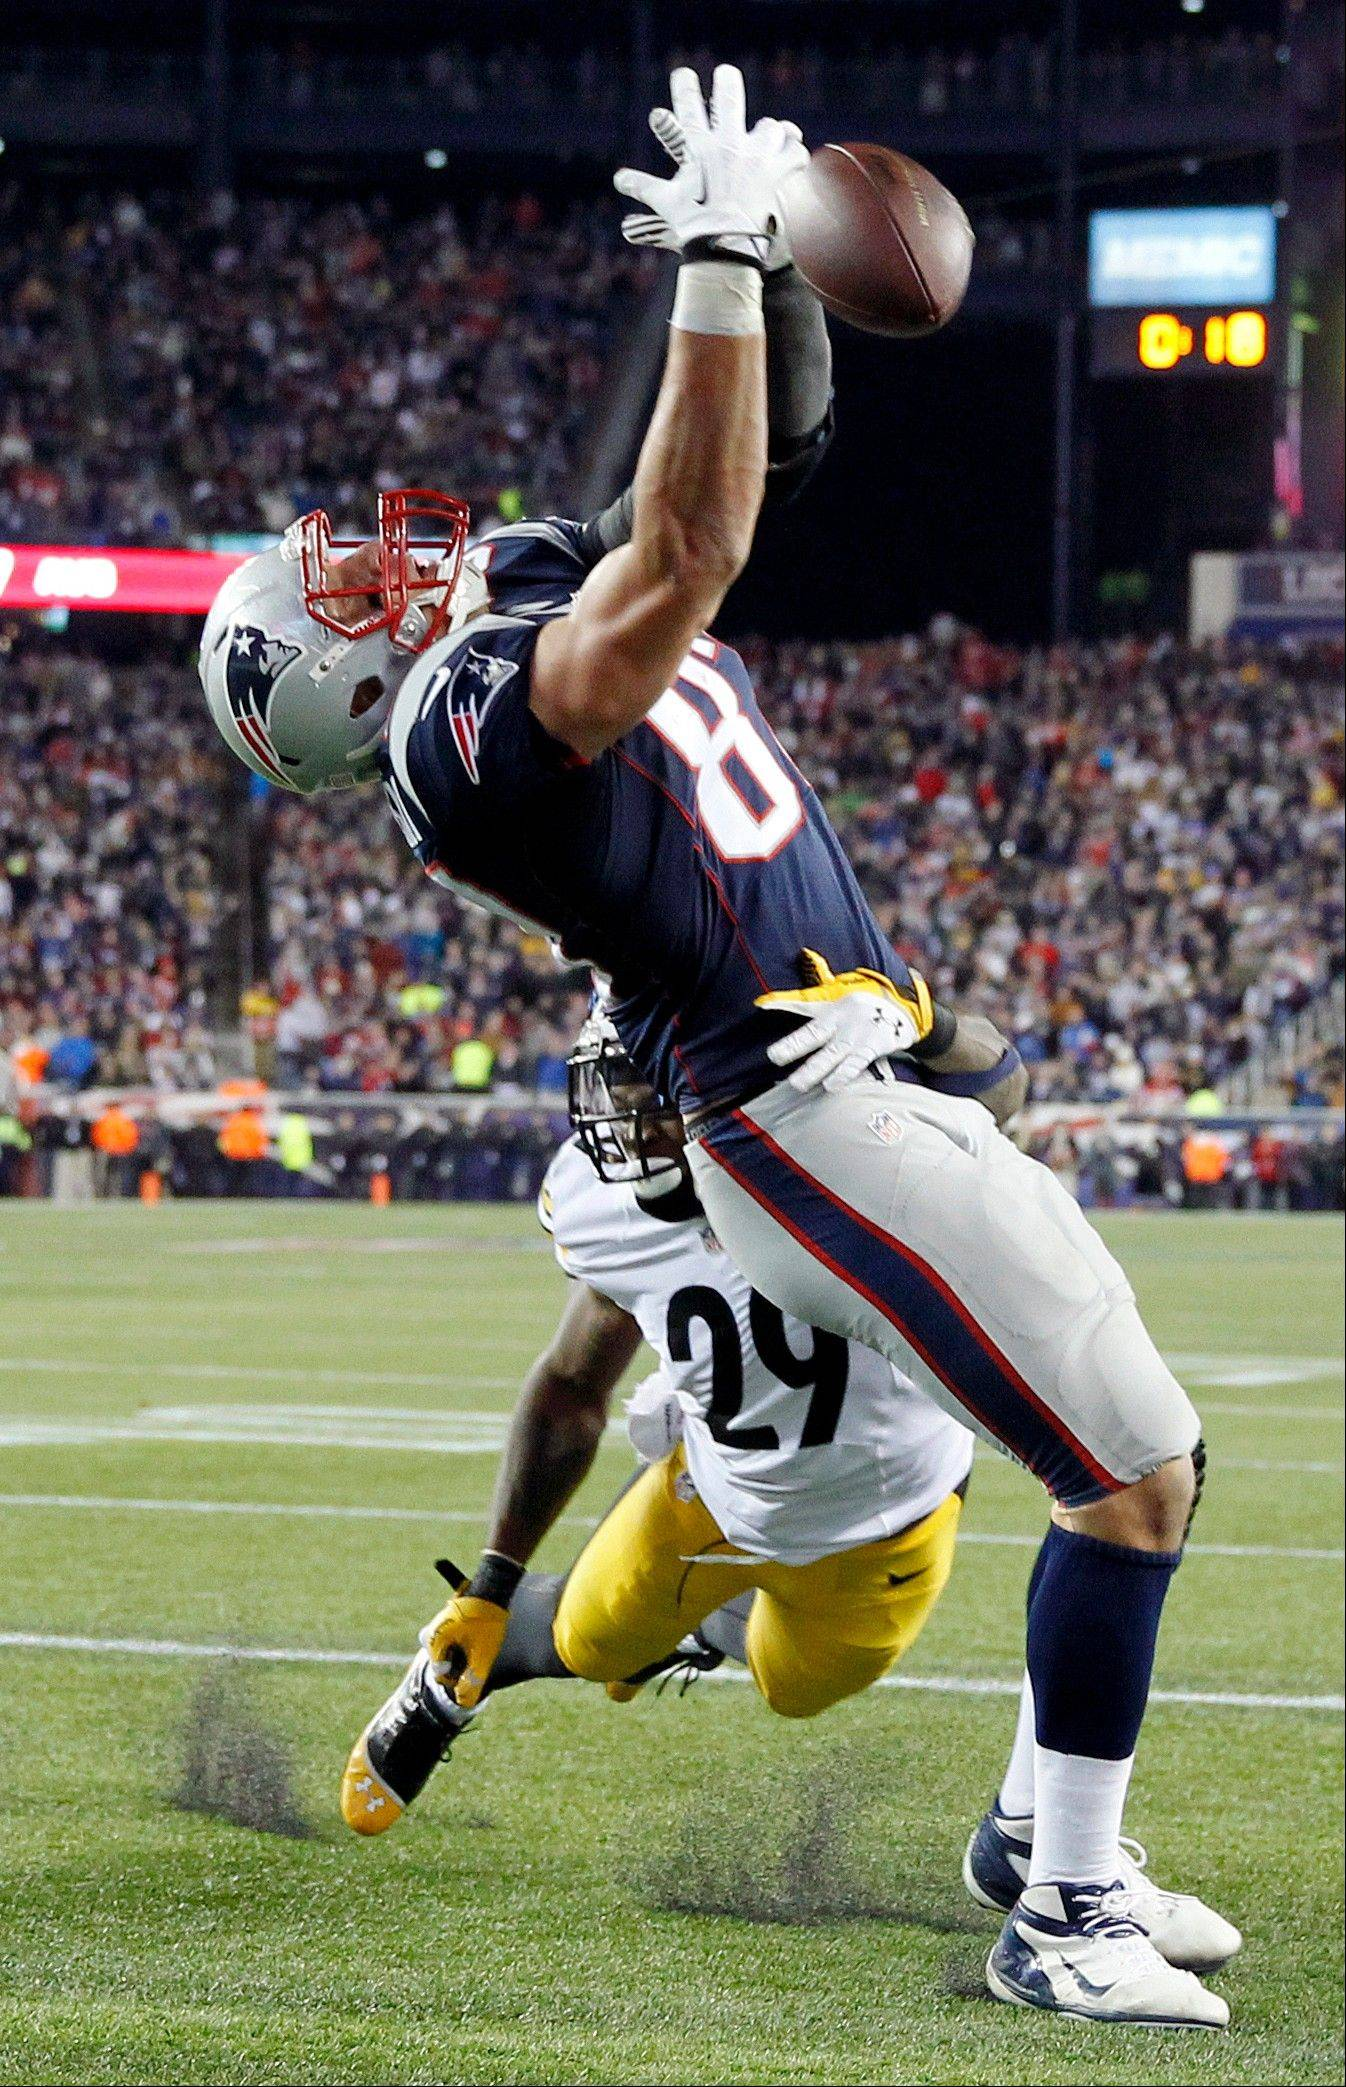 New England Patriots tight end Rob Gronkowski, top, can�t catch a pass as Pittsburgh Steelers strong safety Shamarko Thomas (29) defends in the second quarter of an NFL football game Sunday, Nov. 3, 2013, in Foxborough, Mass.